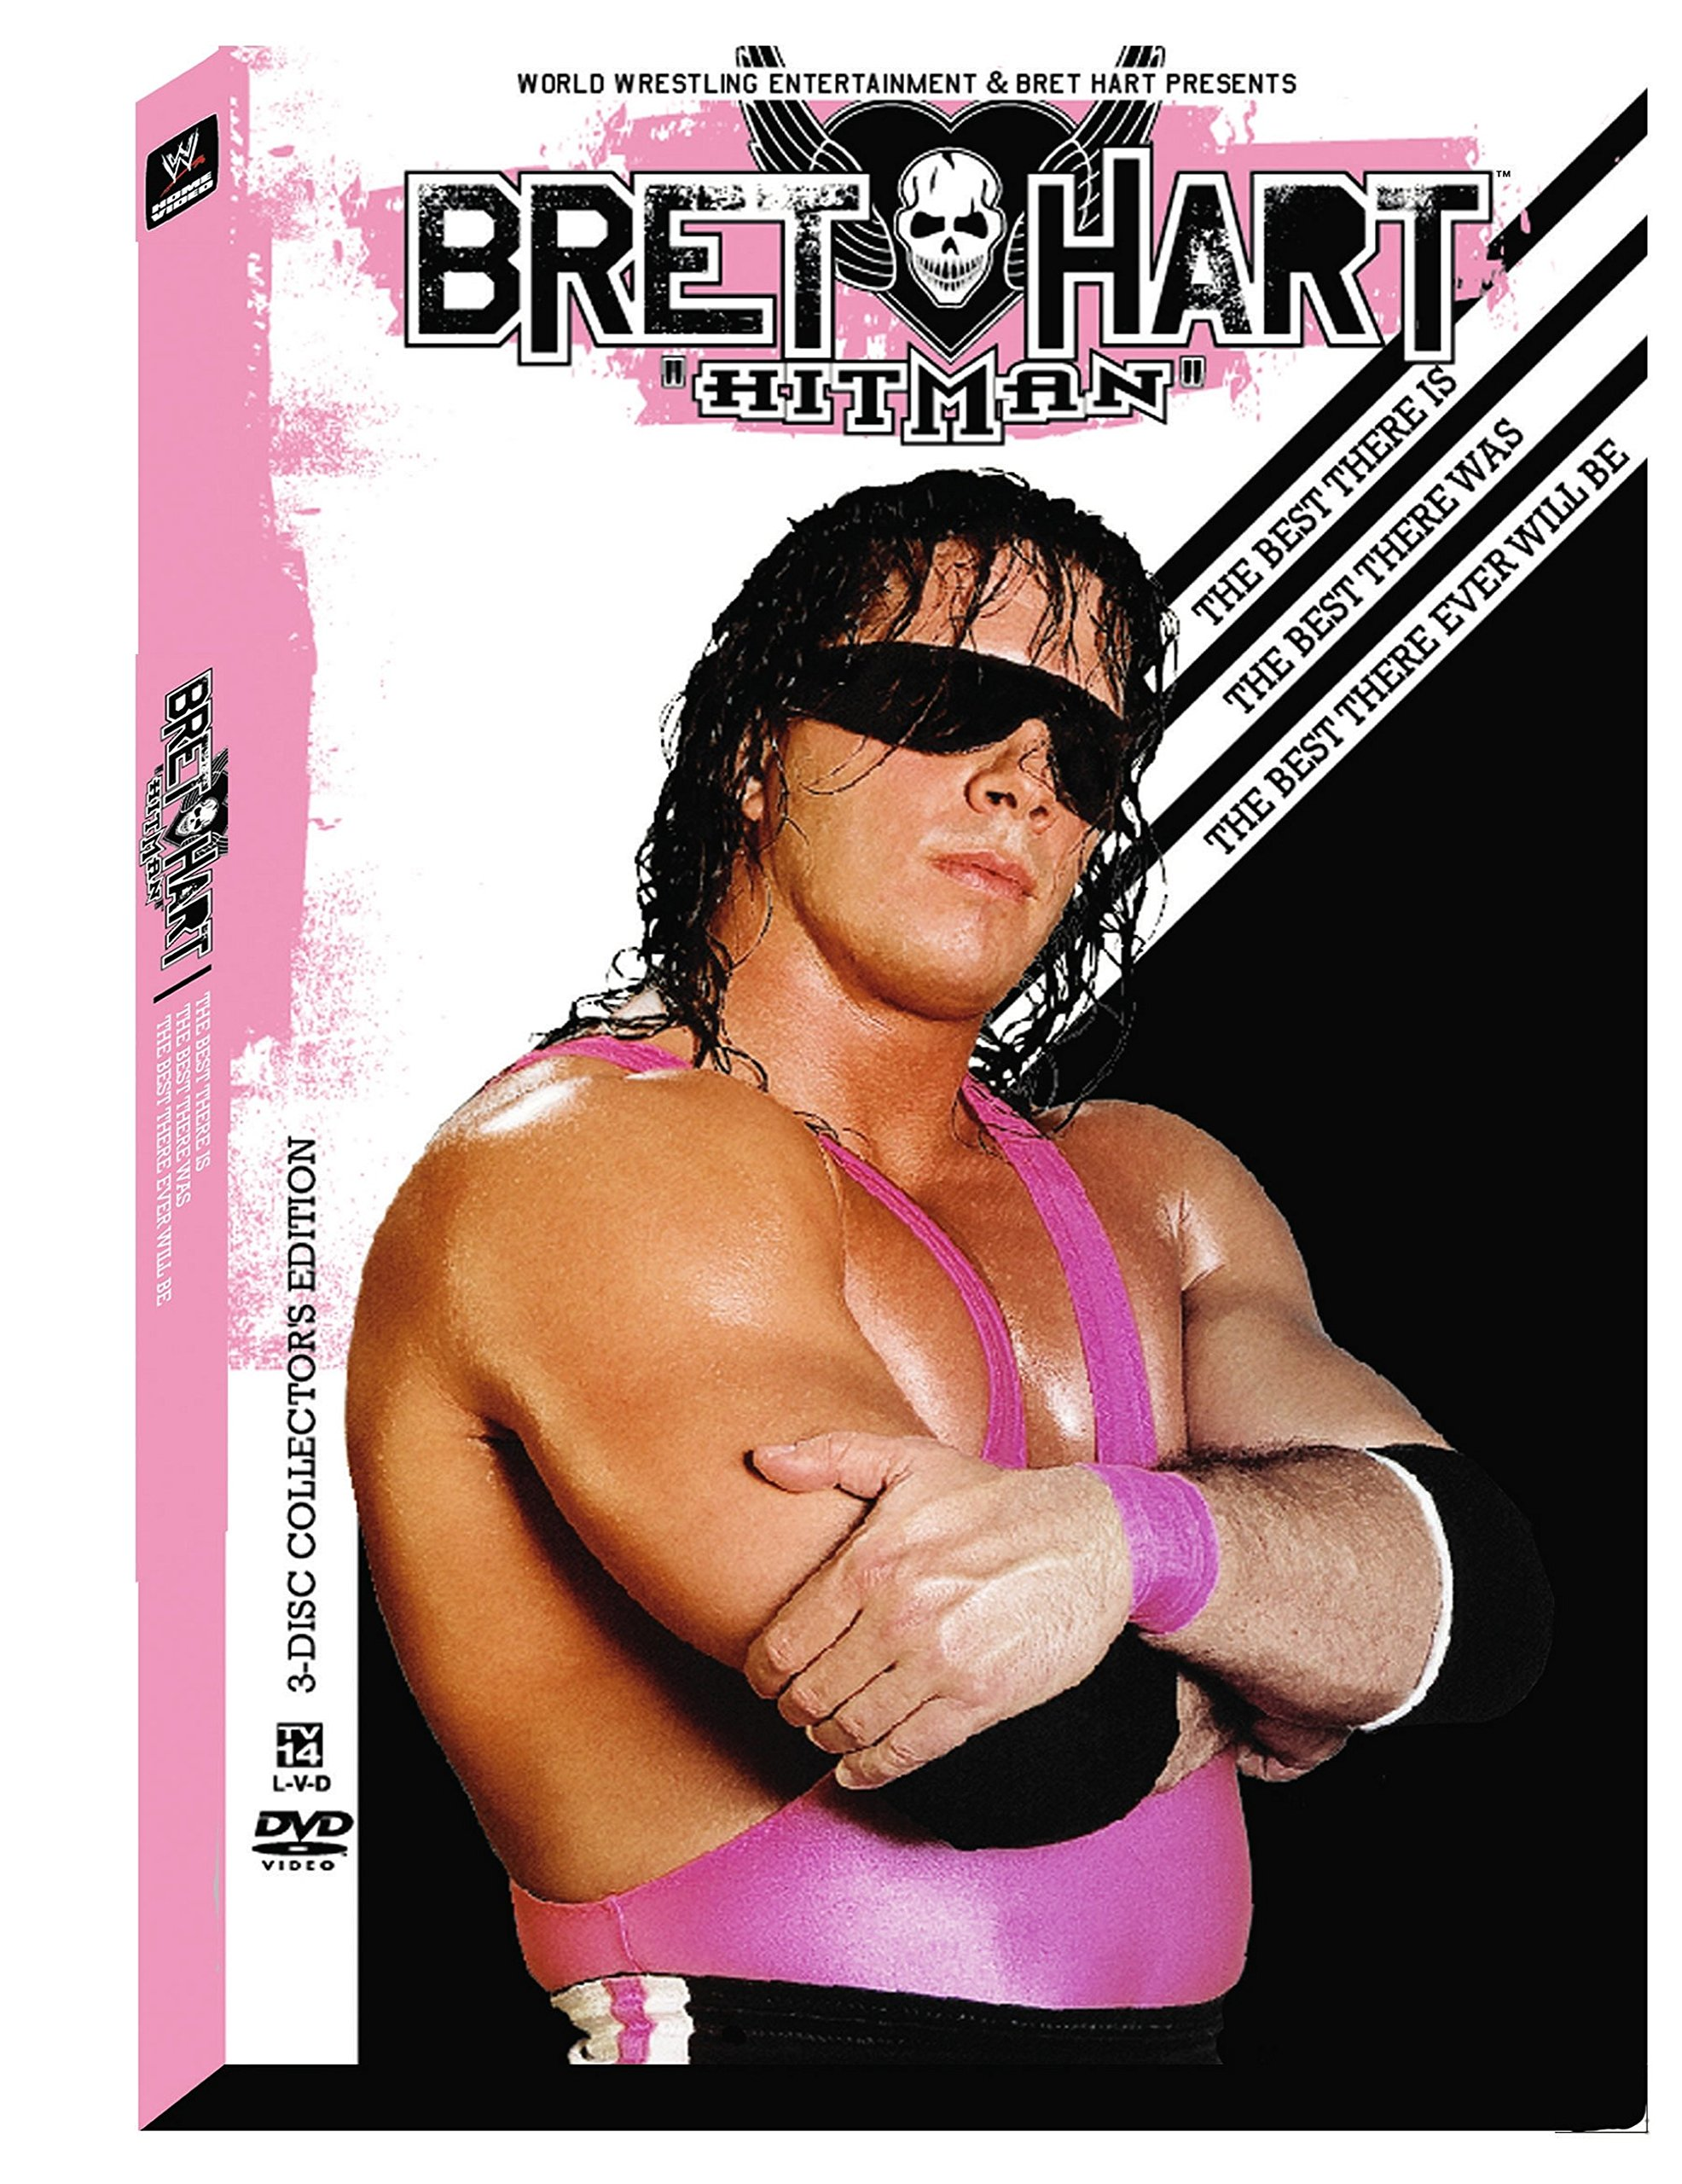 WWE: Bret ''Hitman'' Hart - The Best There Is, The Best There Was, The Best There Ever Will Be